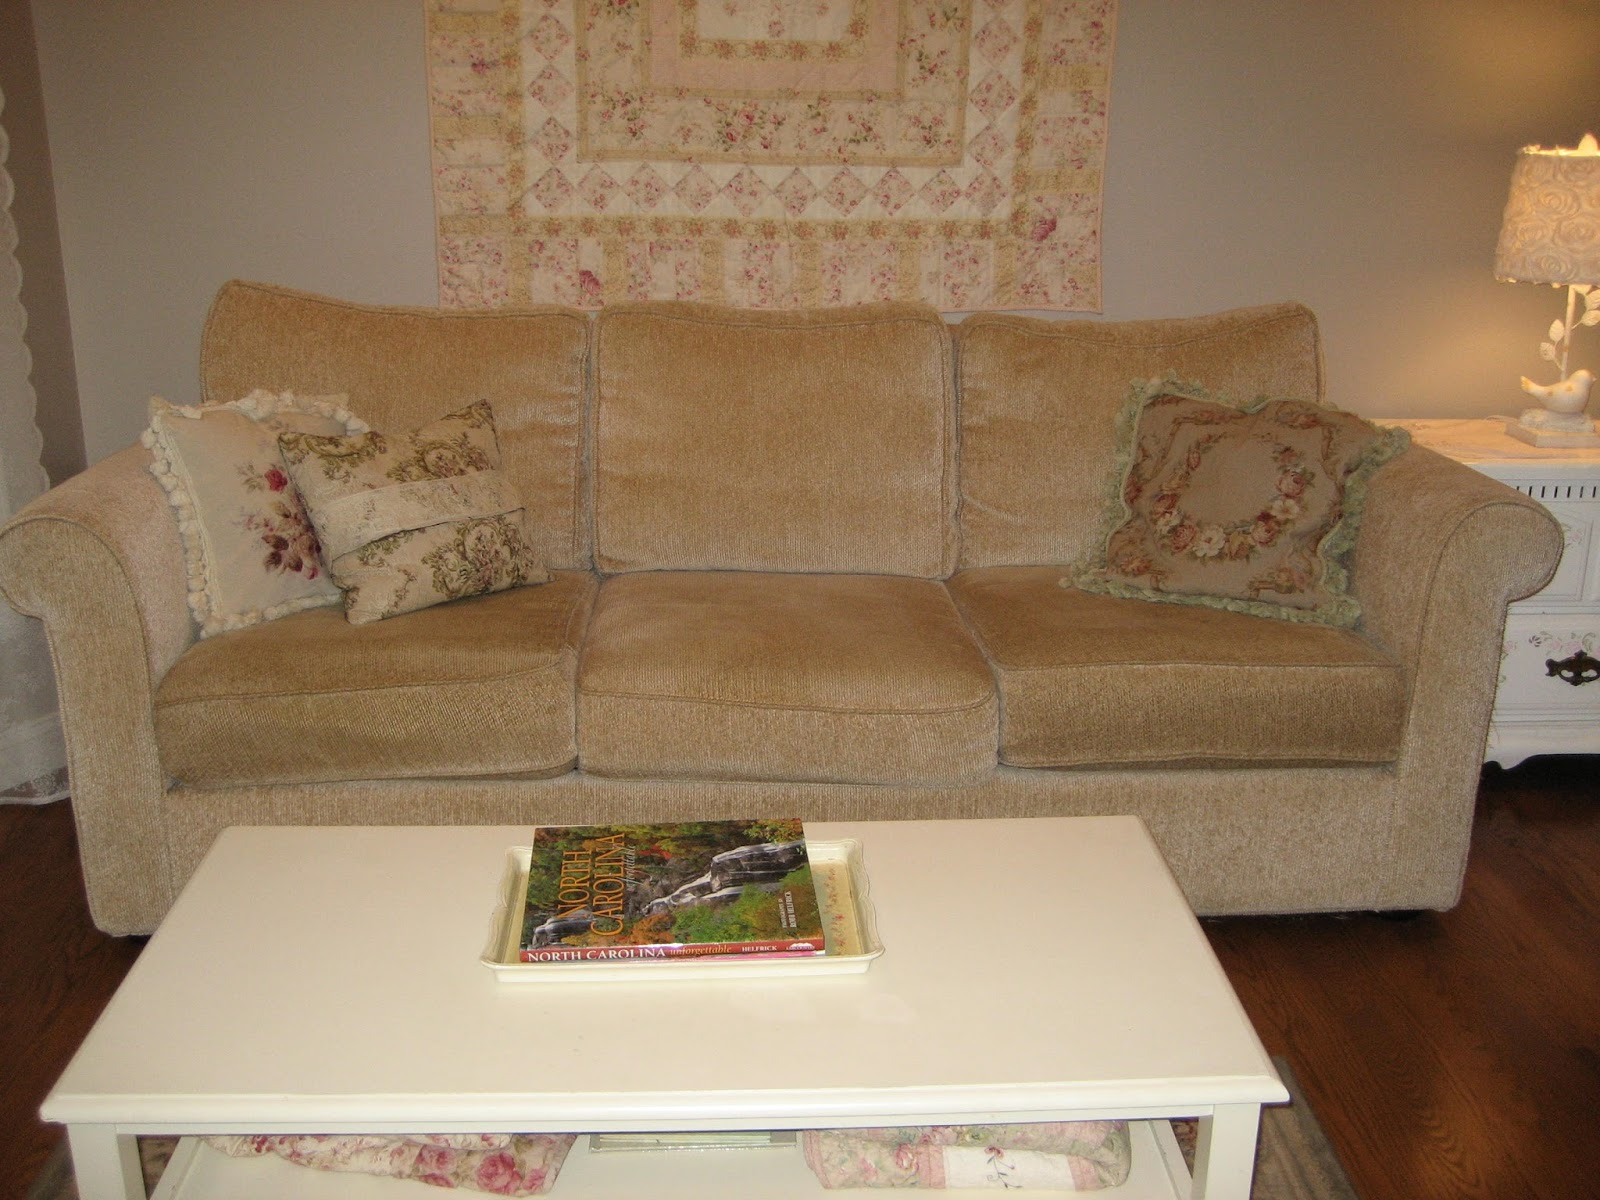 ... Sofa With Washable Slipcovers. So, I Found One In The Basic Style I  Liked And Thought That When The Upholstery Wore Out I Would Make Or Have  Slipcovers ...